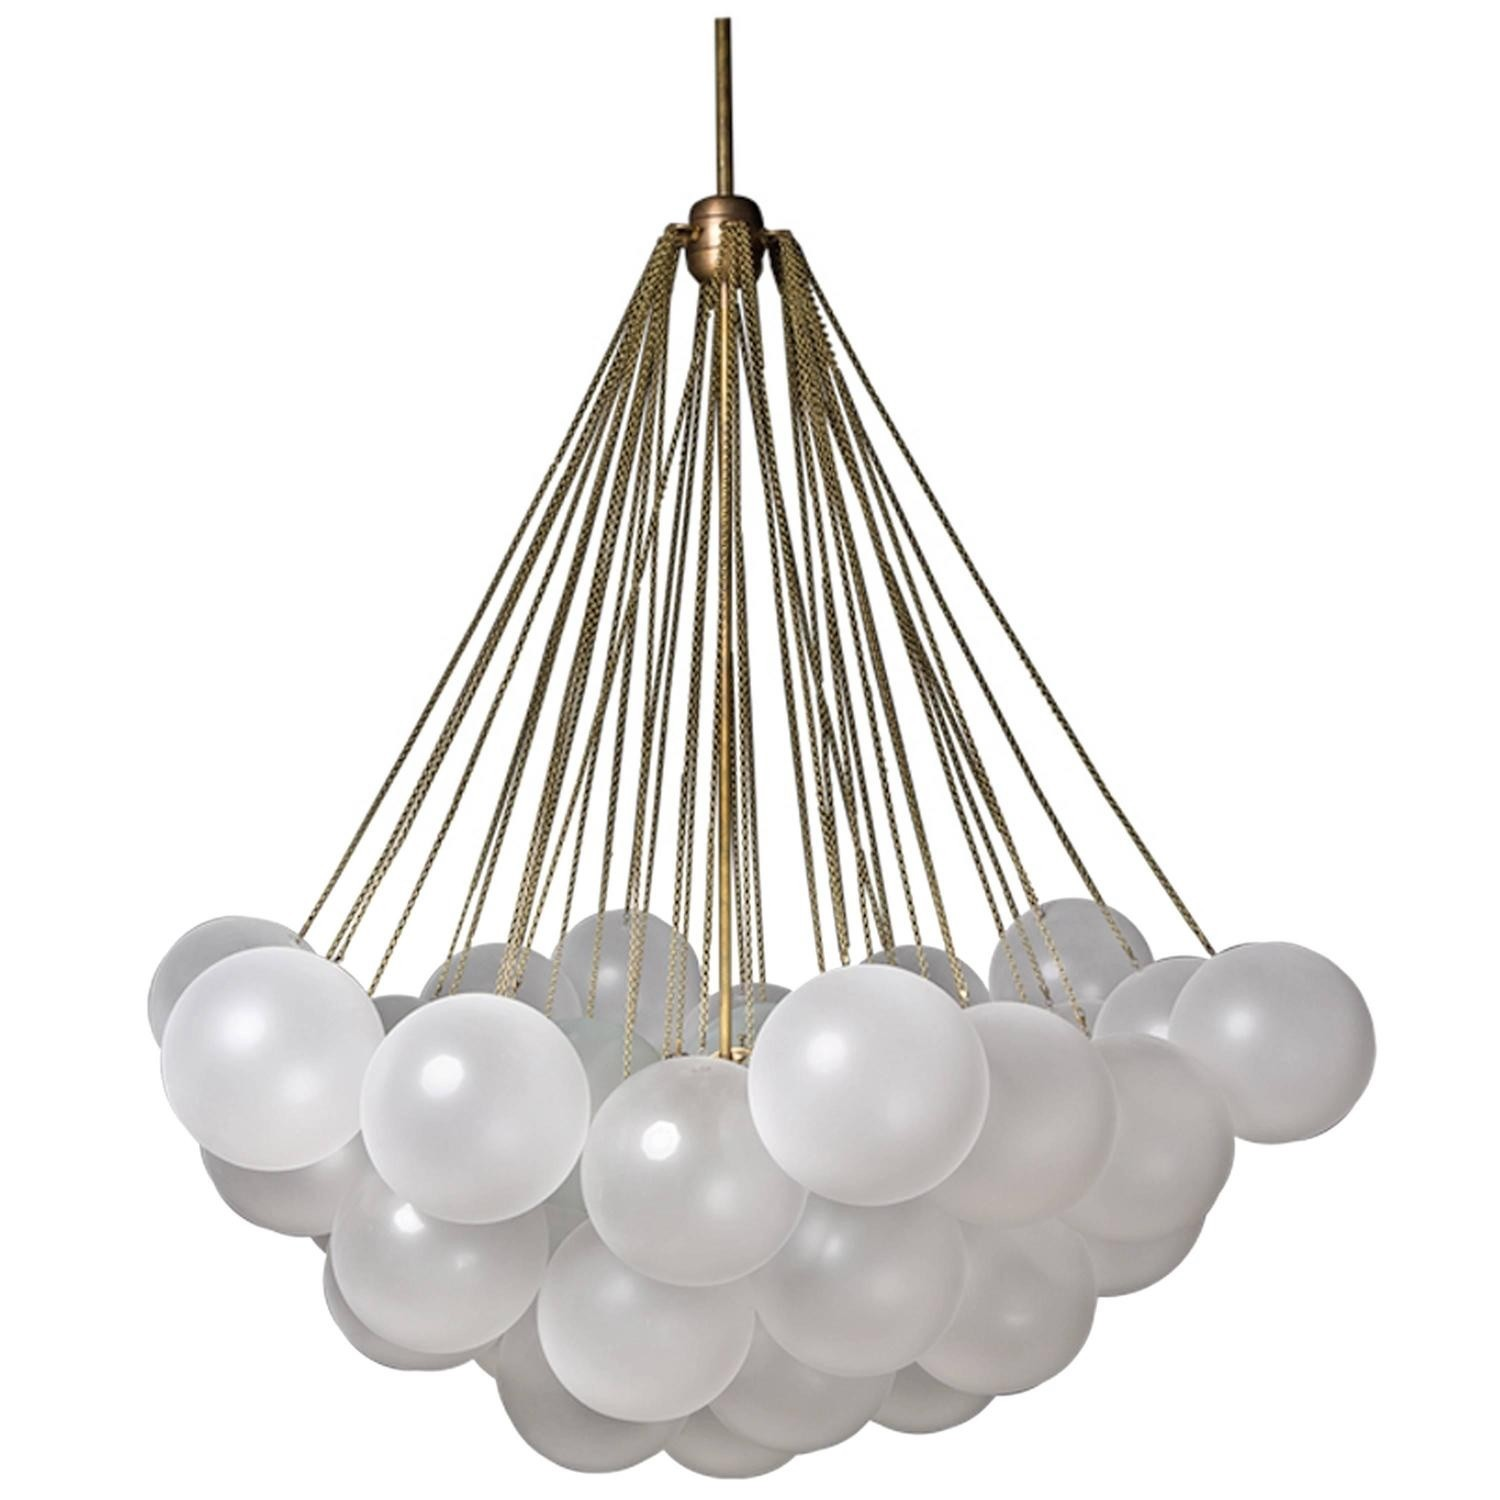 Lustre Contemporain Design Lustre Contemporain Cloud 37 Design Par Apparatus Une Lampe